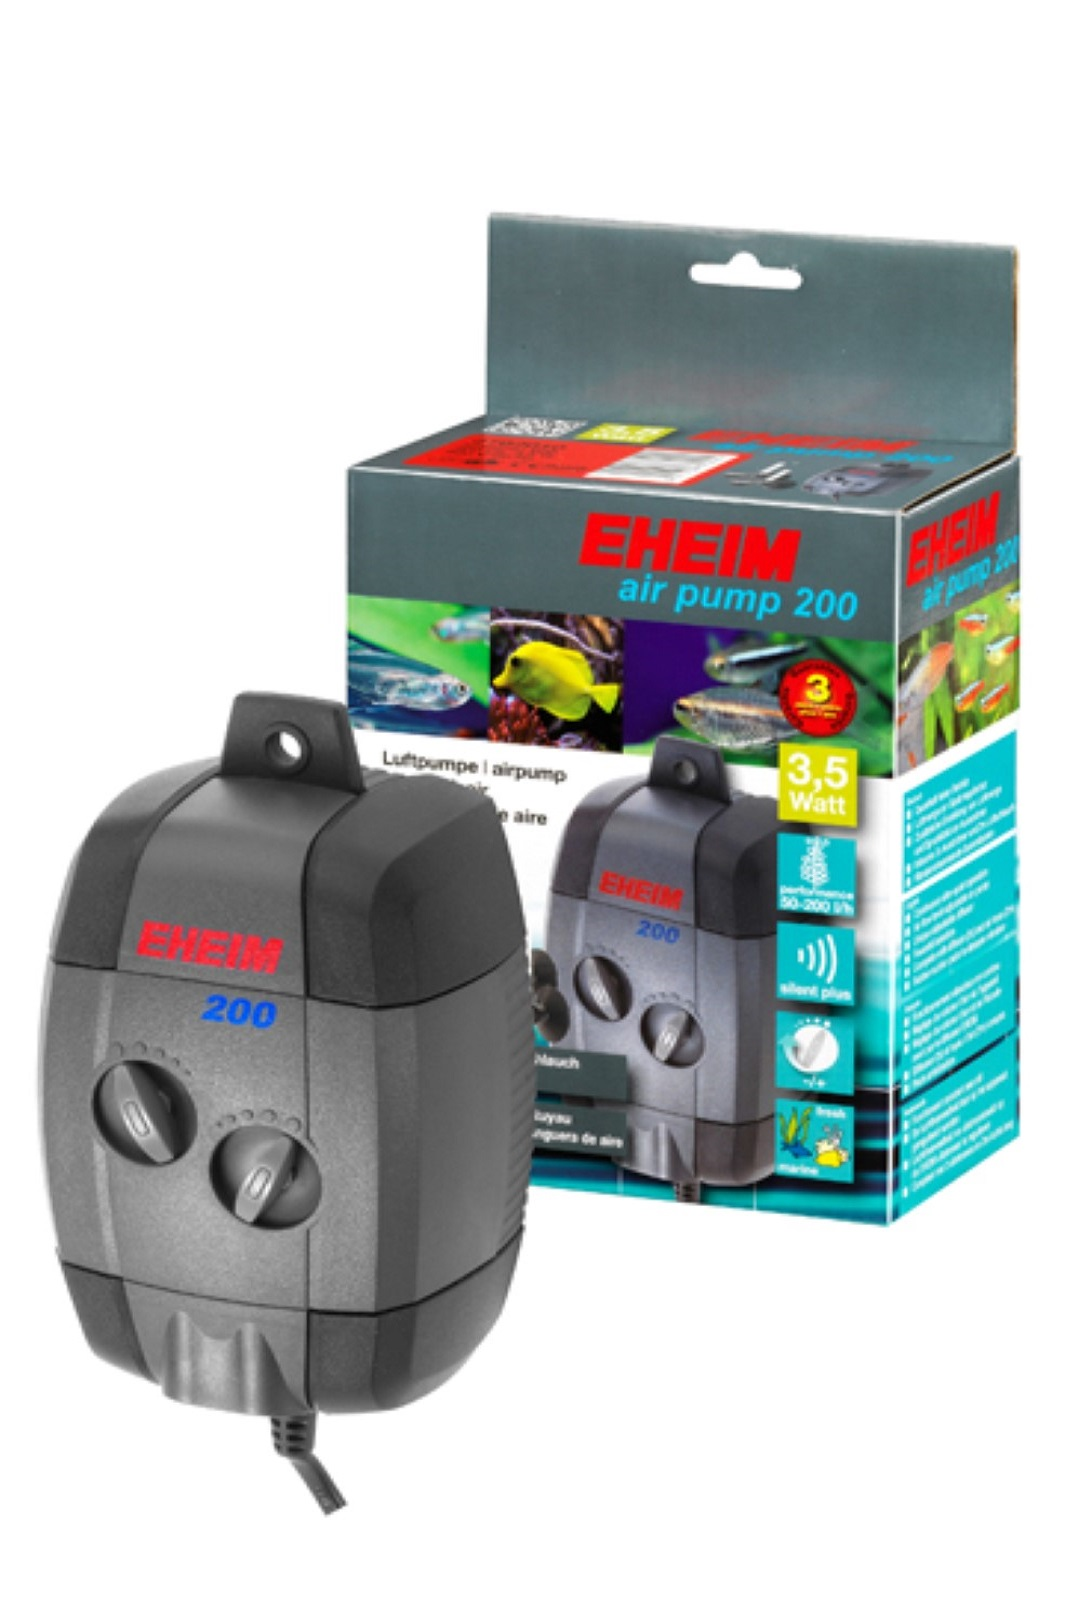 Eheim air pump 200 Pumpe Luftpumpe Aquarium